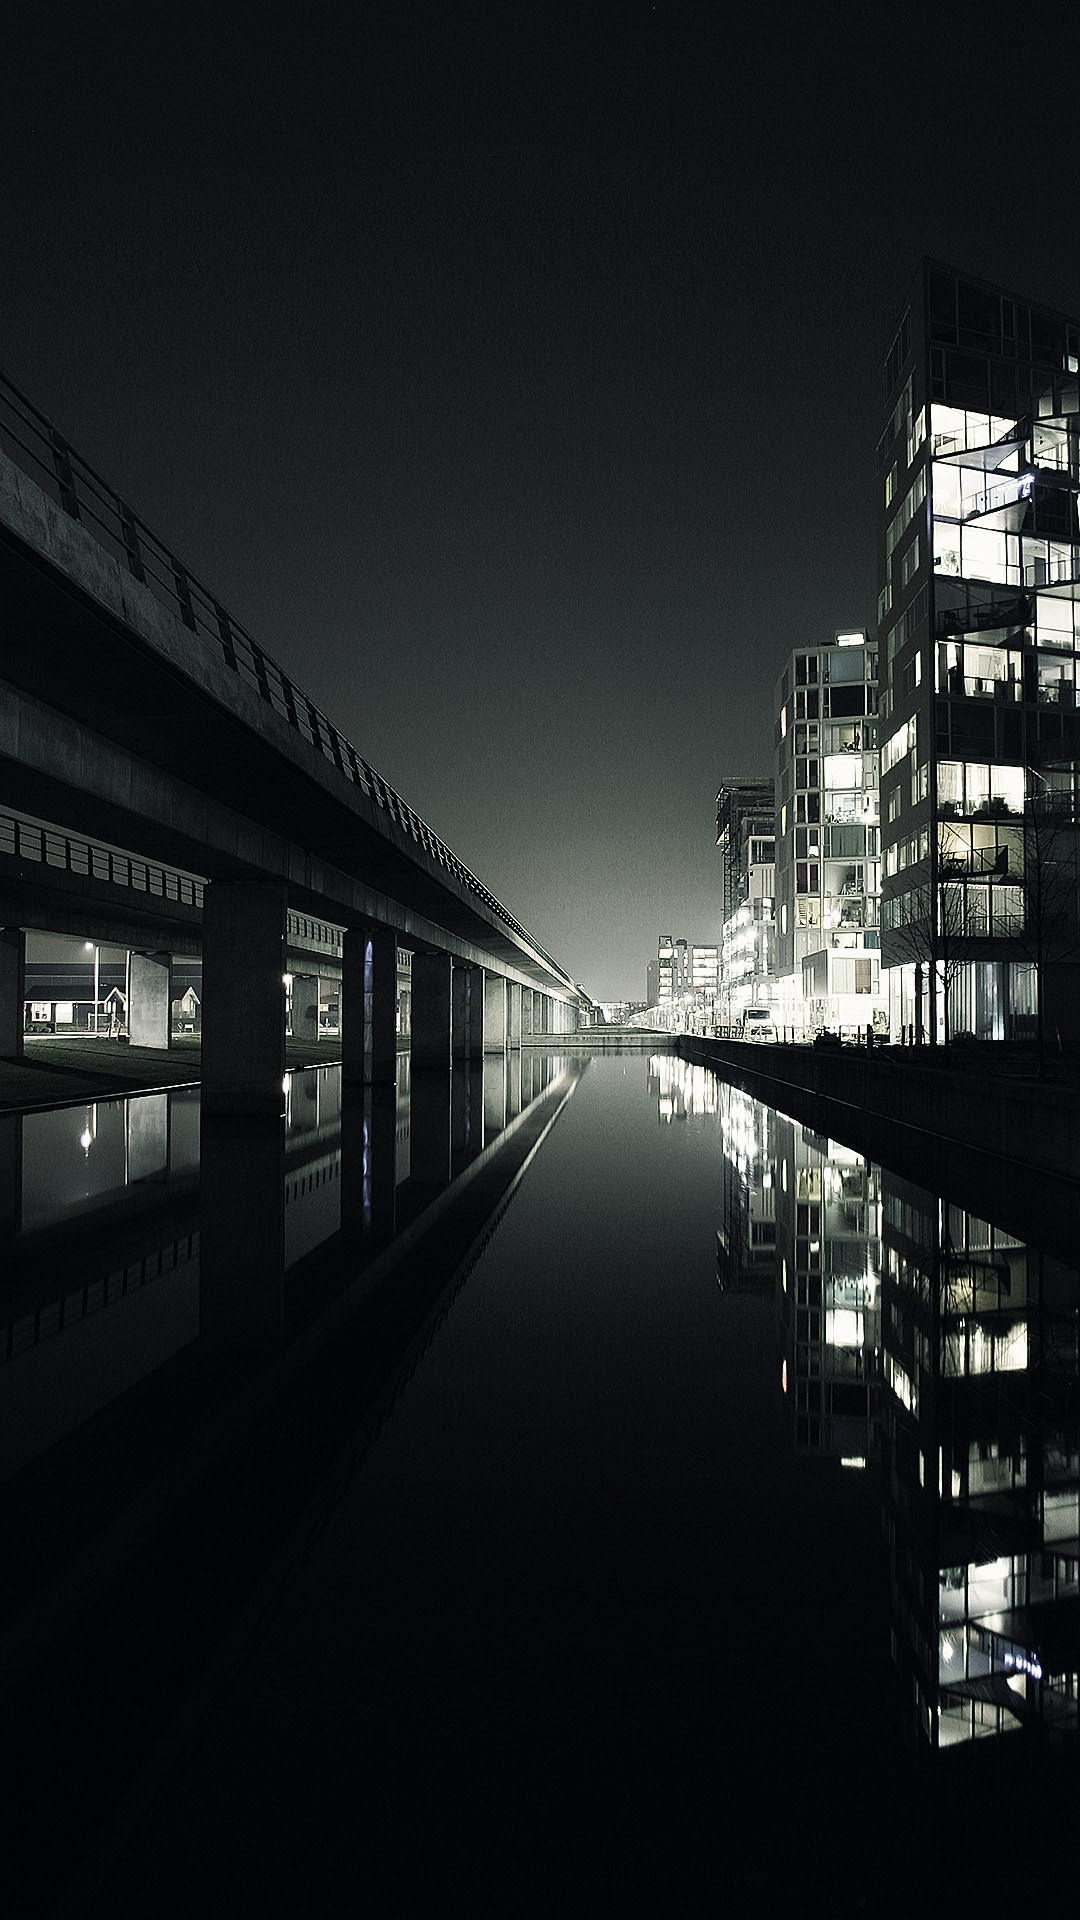 Wallpapers-For-Galaxy-S4-Cities-2